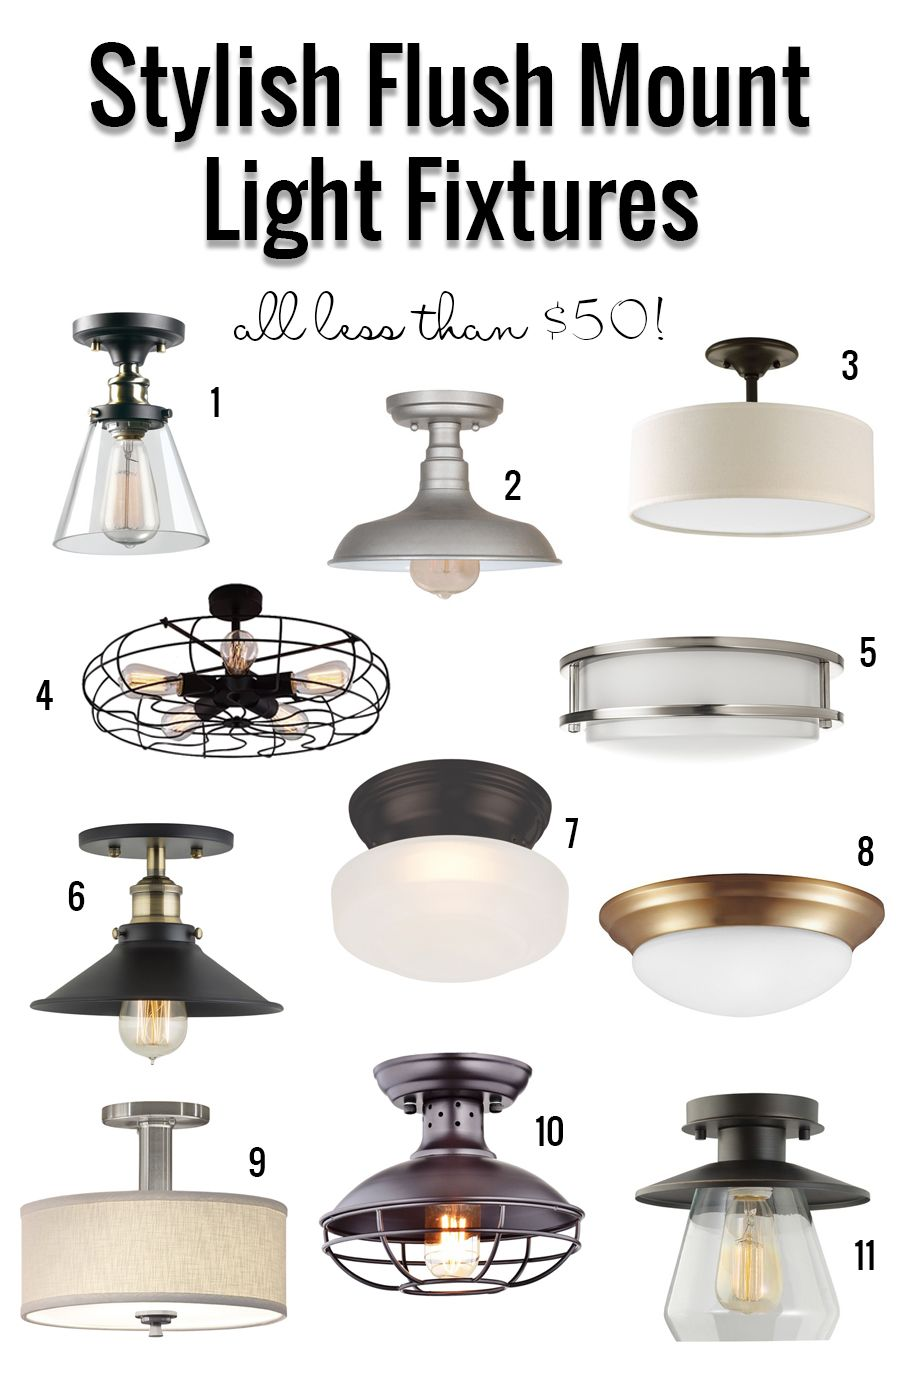 Stylish Flush Mount Light Fixtures Under $50 | Remodelaholic | Bloglovinu0027